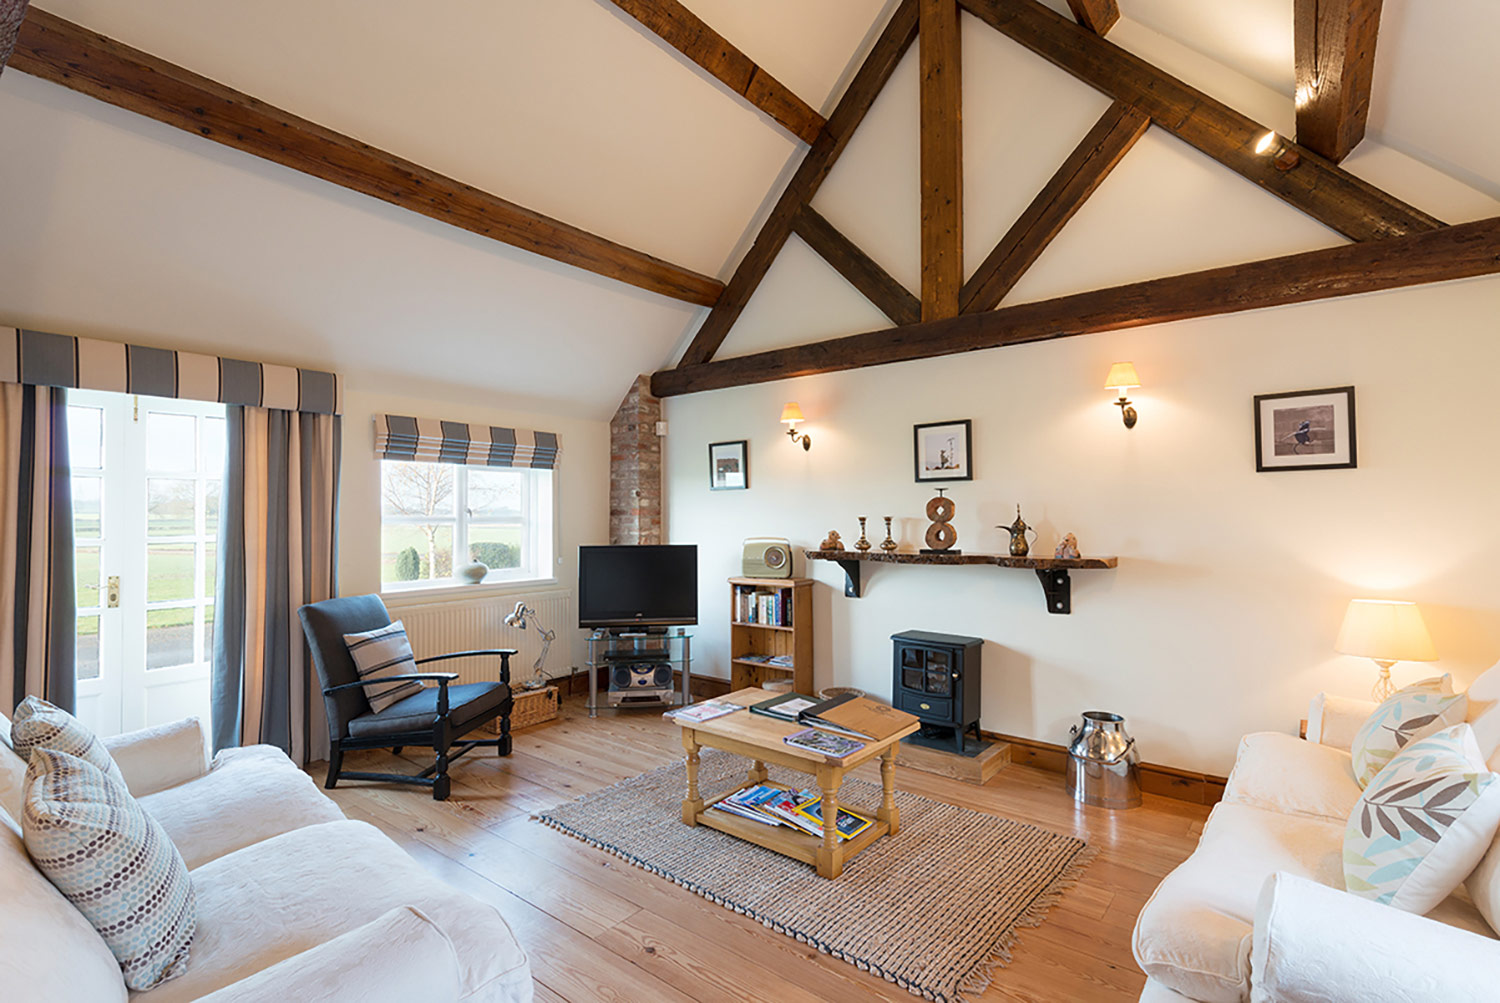 Fully equipped holiday cottages   Upper Rectory Farm Cottages